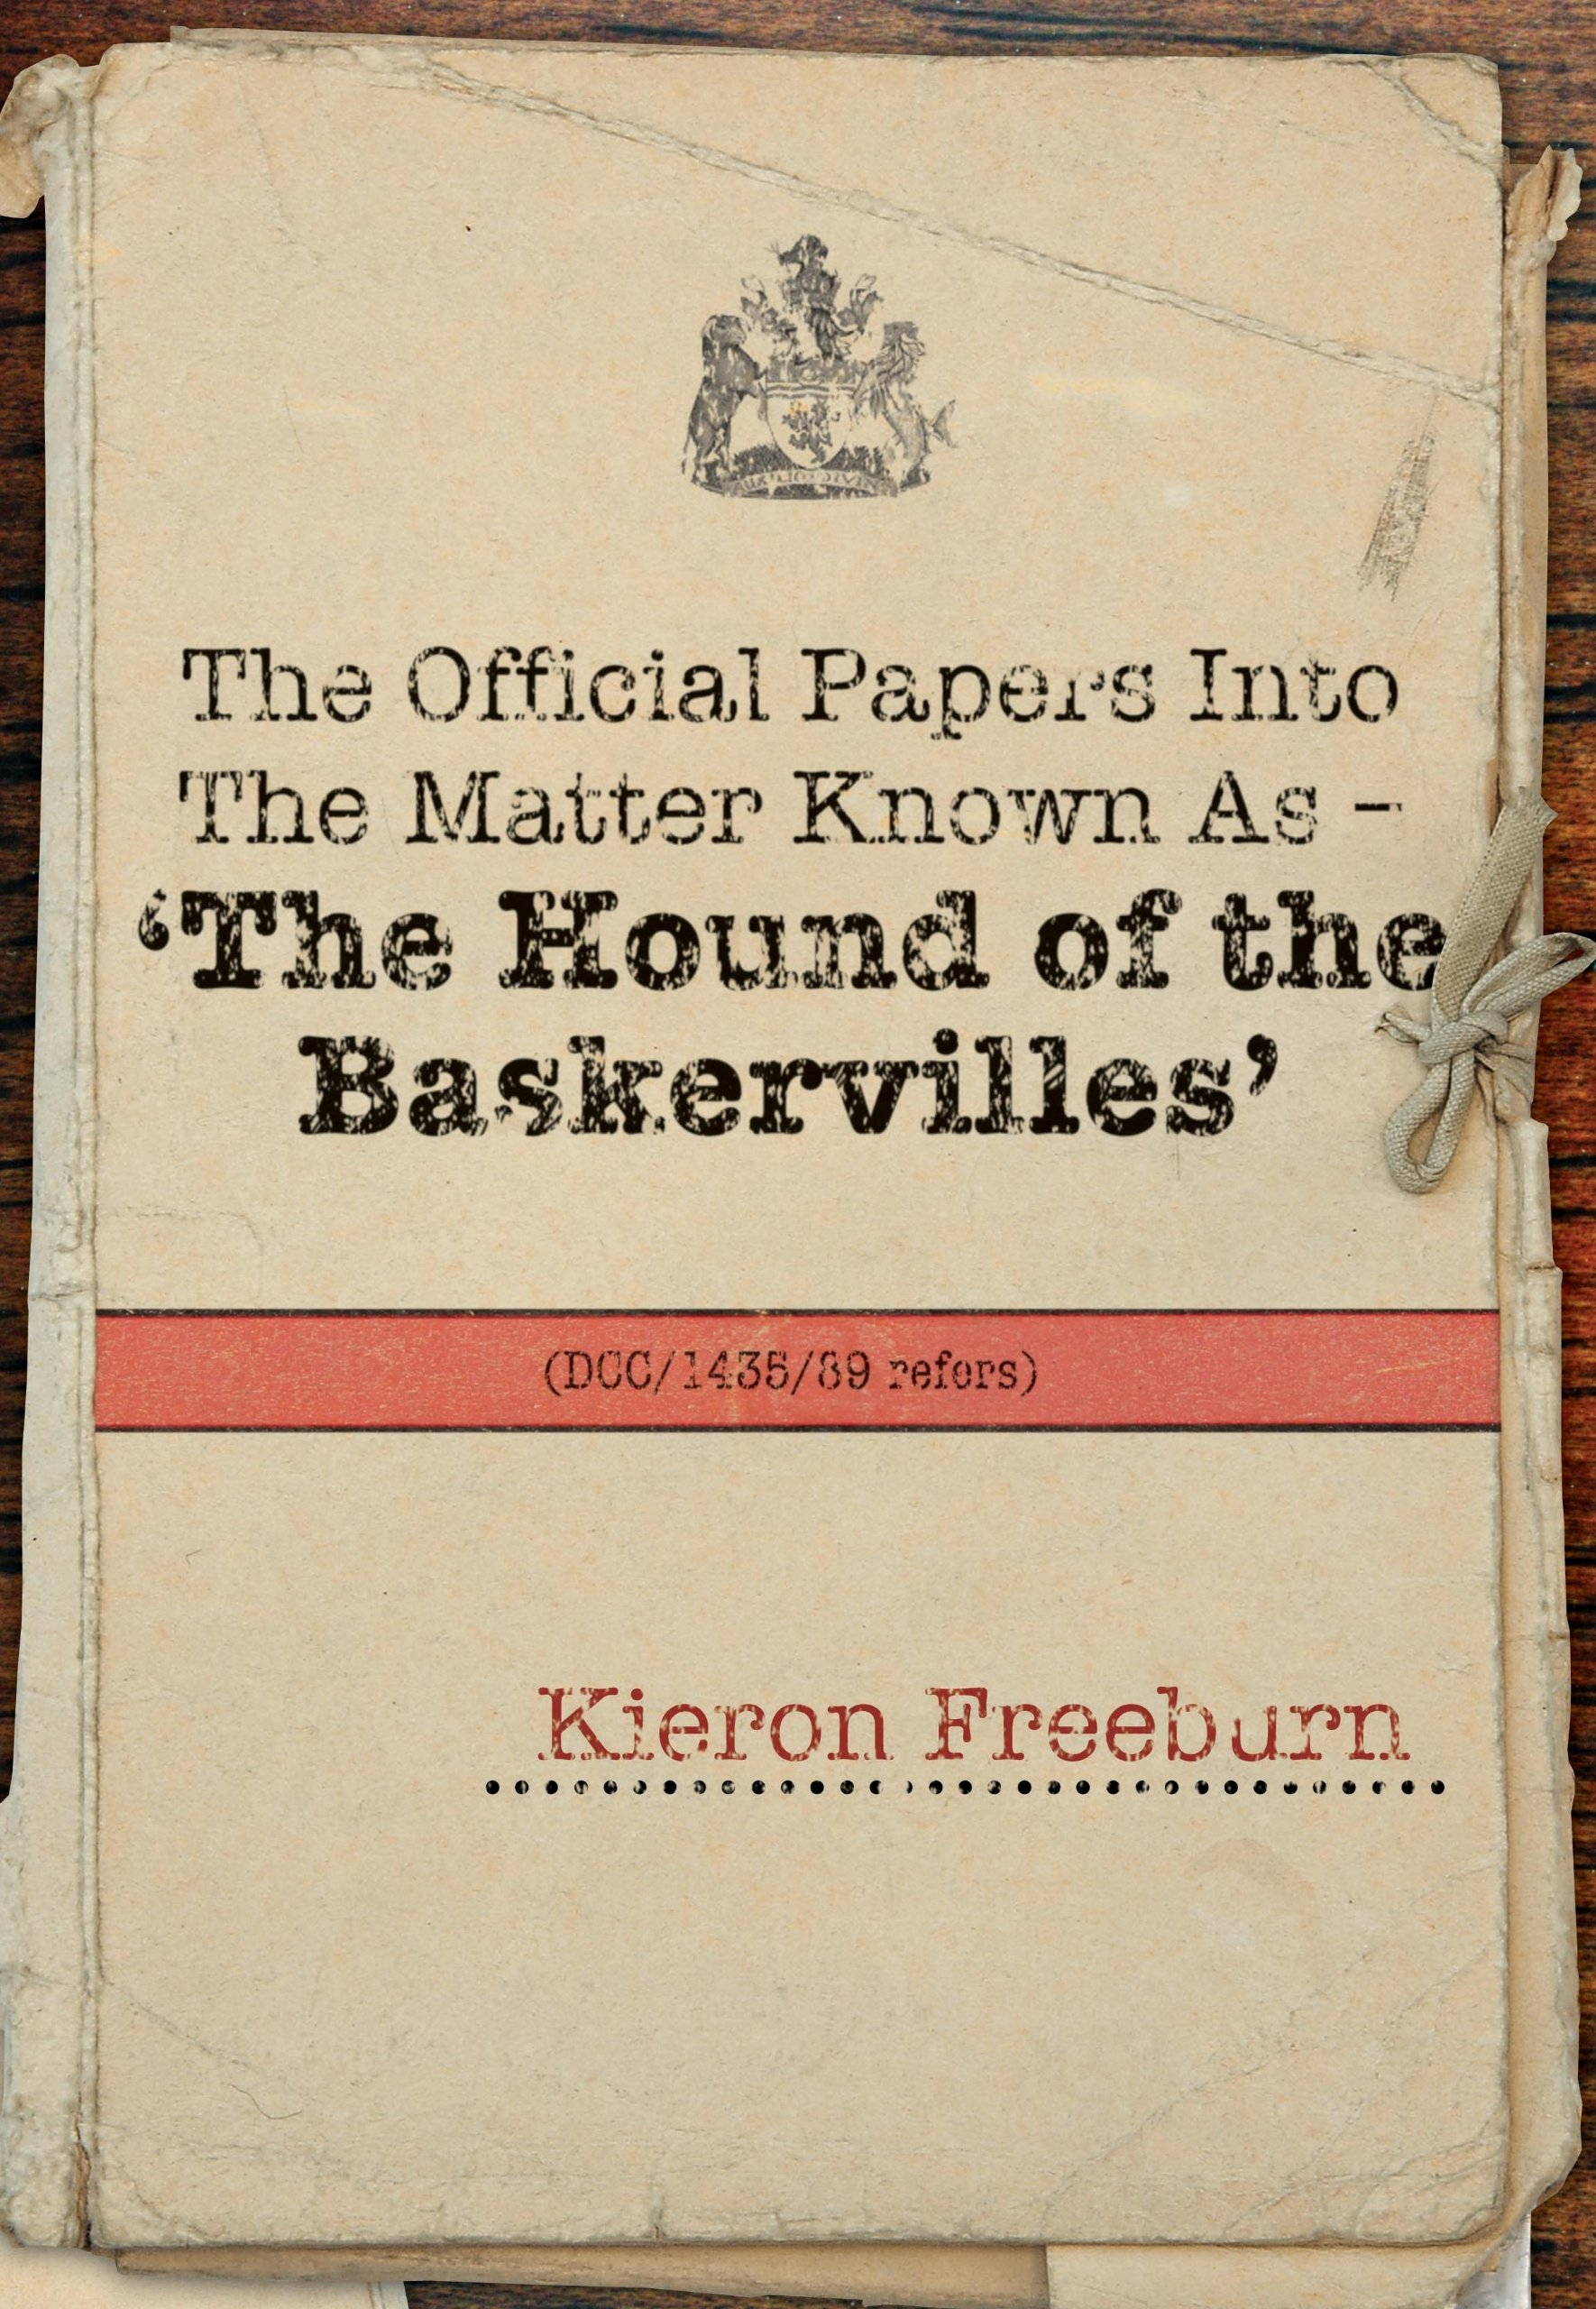 Download The Official Papers Into the Matter Known as -The Hound of the Baskervilles Dci1435-89 Refers ebook